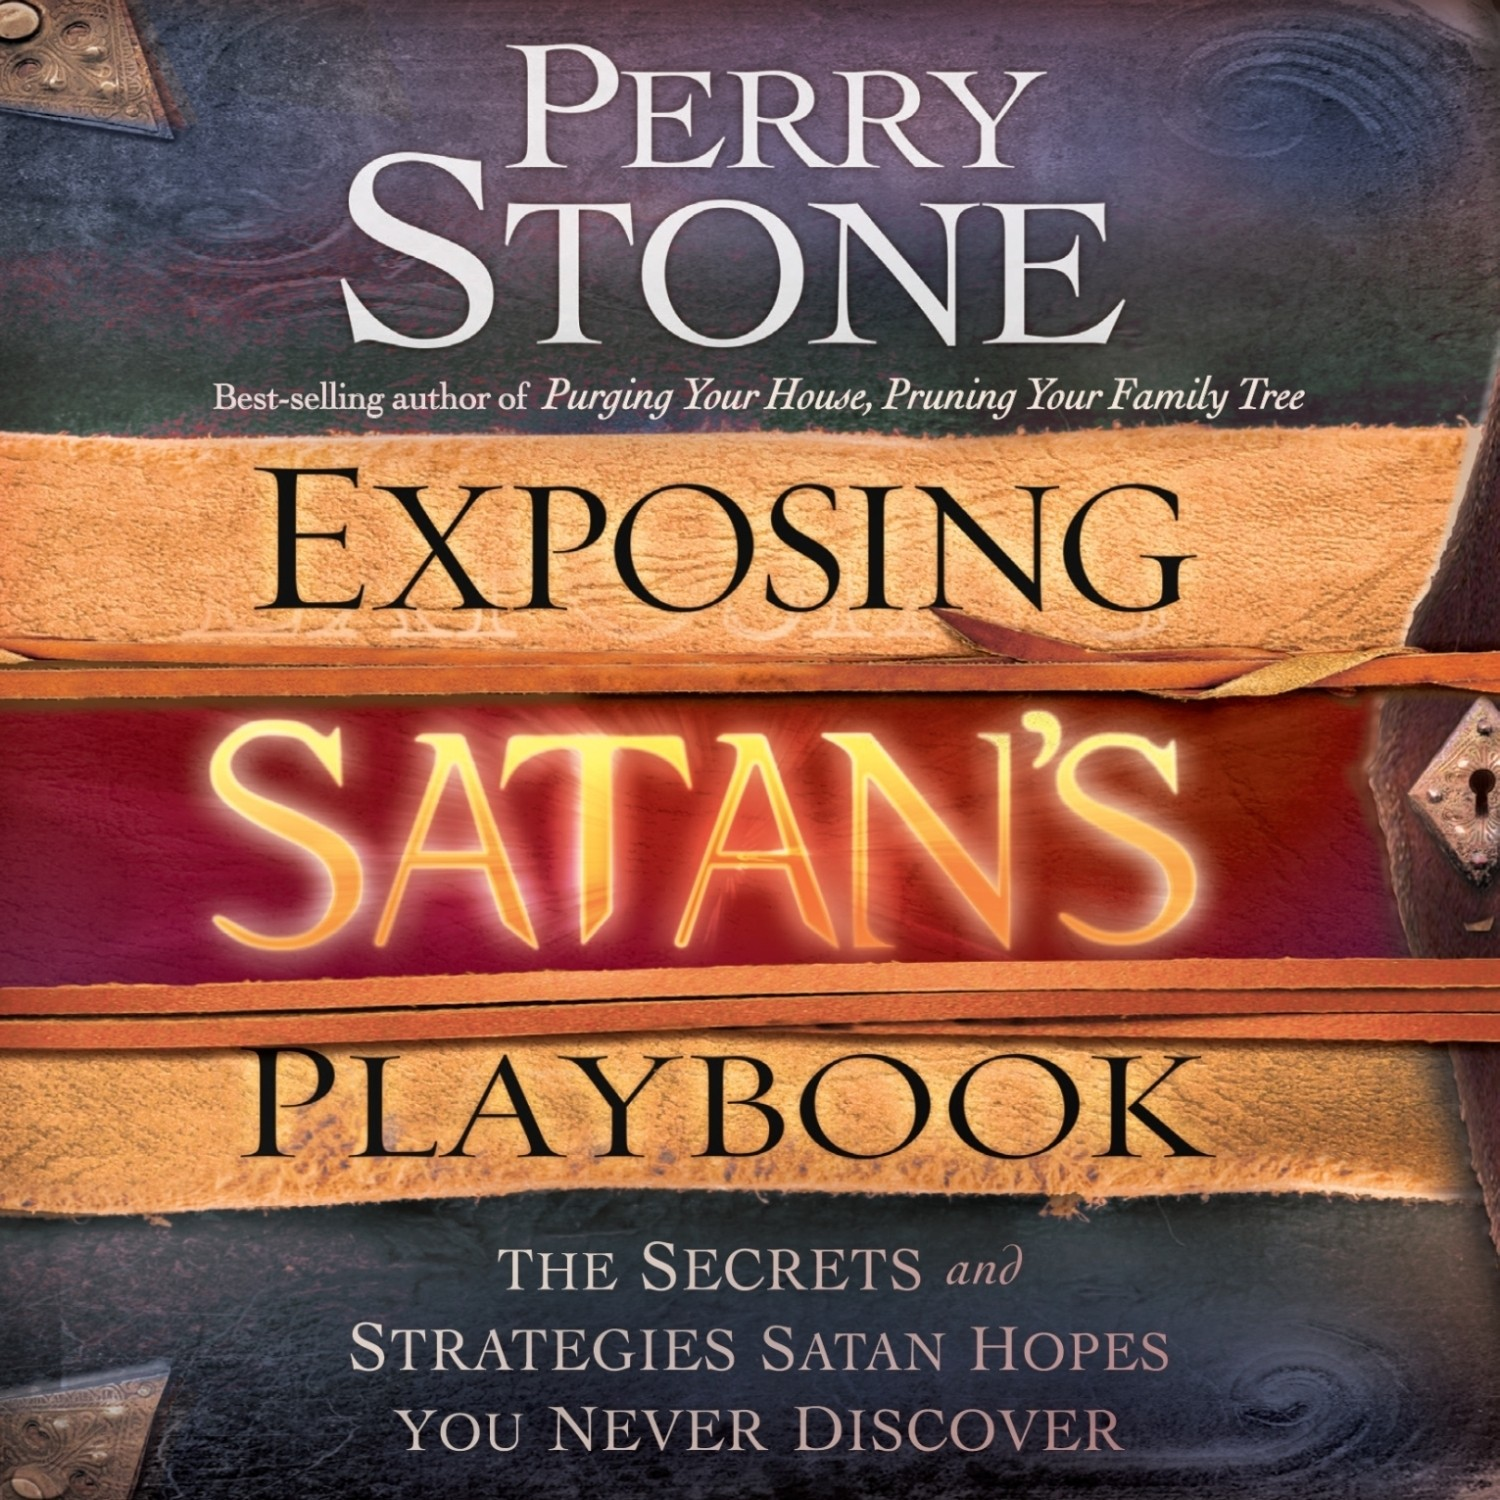 Printable Exposing Satan's Playbook: The Secrets and Strategies Satan Hopes You Never Discover Audiobook Cover Art